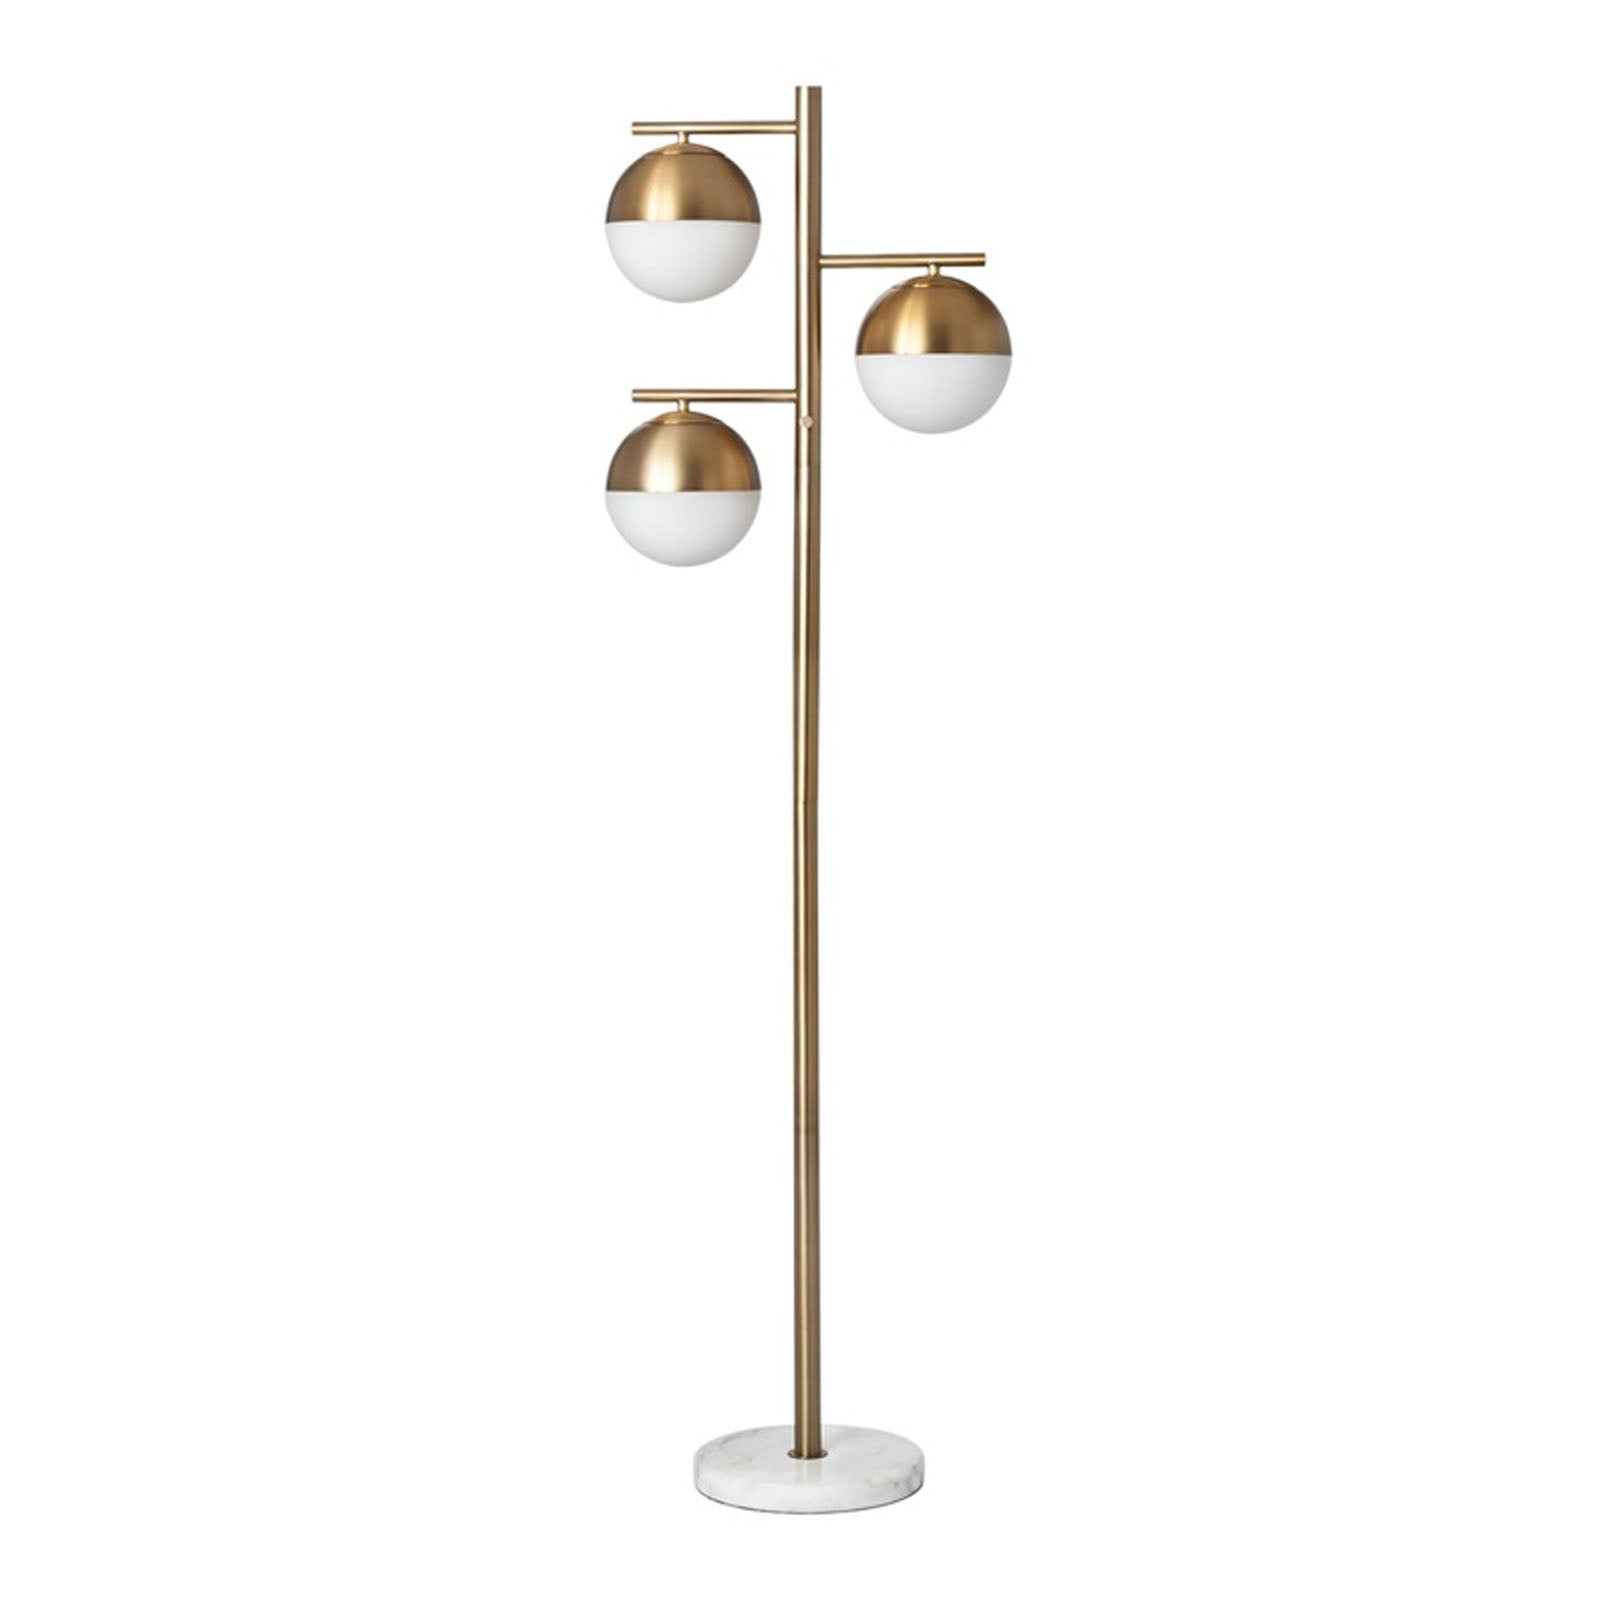 Pre-Order 35 days delivery Rho  floor lamp CY-NEW-054